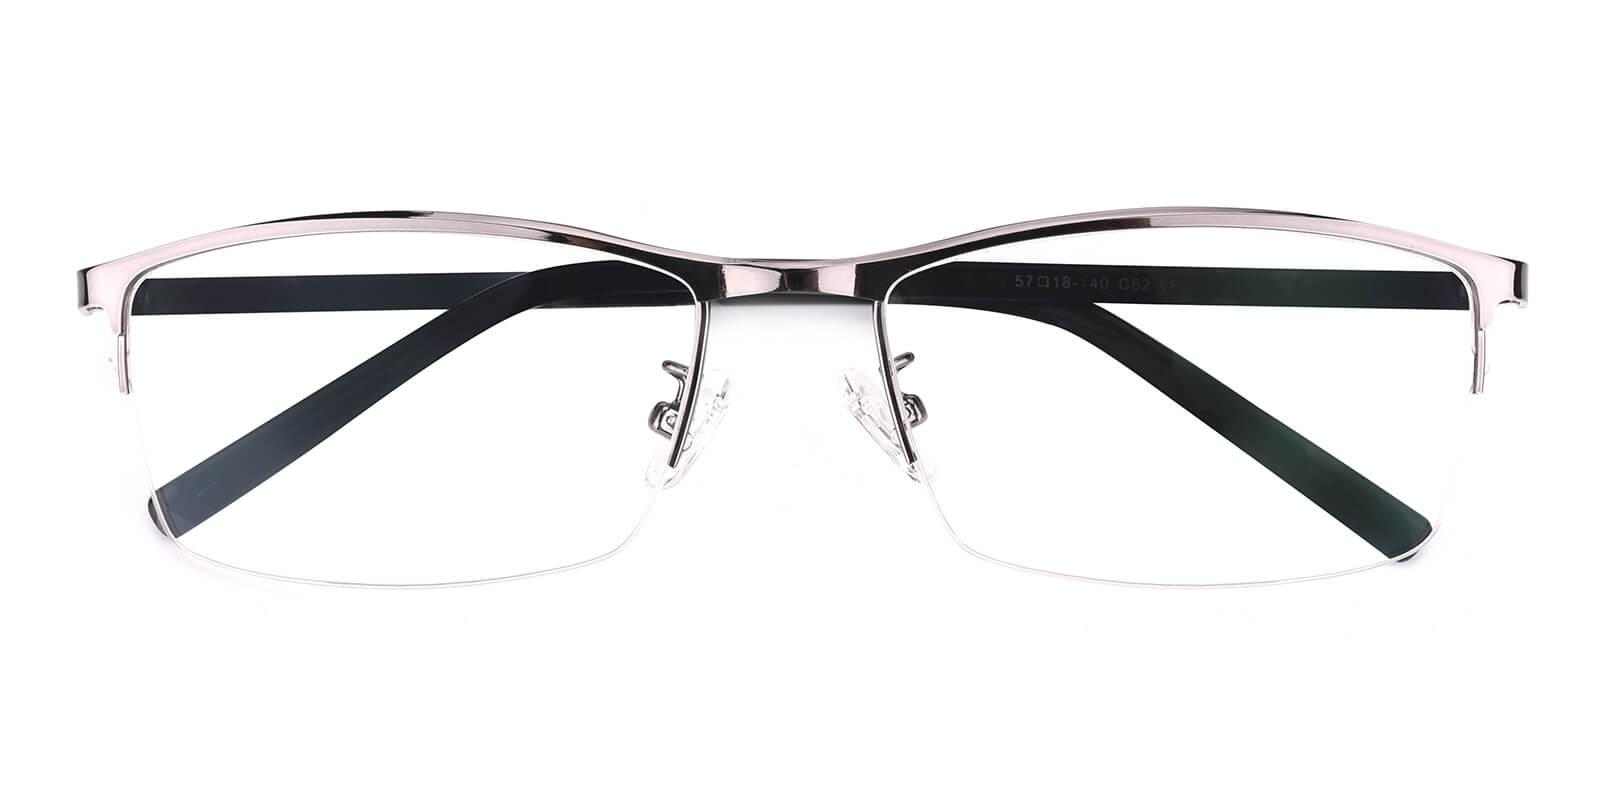 Elegant-Gun-Rectangle-Metal-Eyeglasses-detail